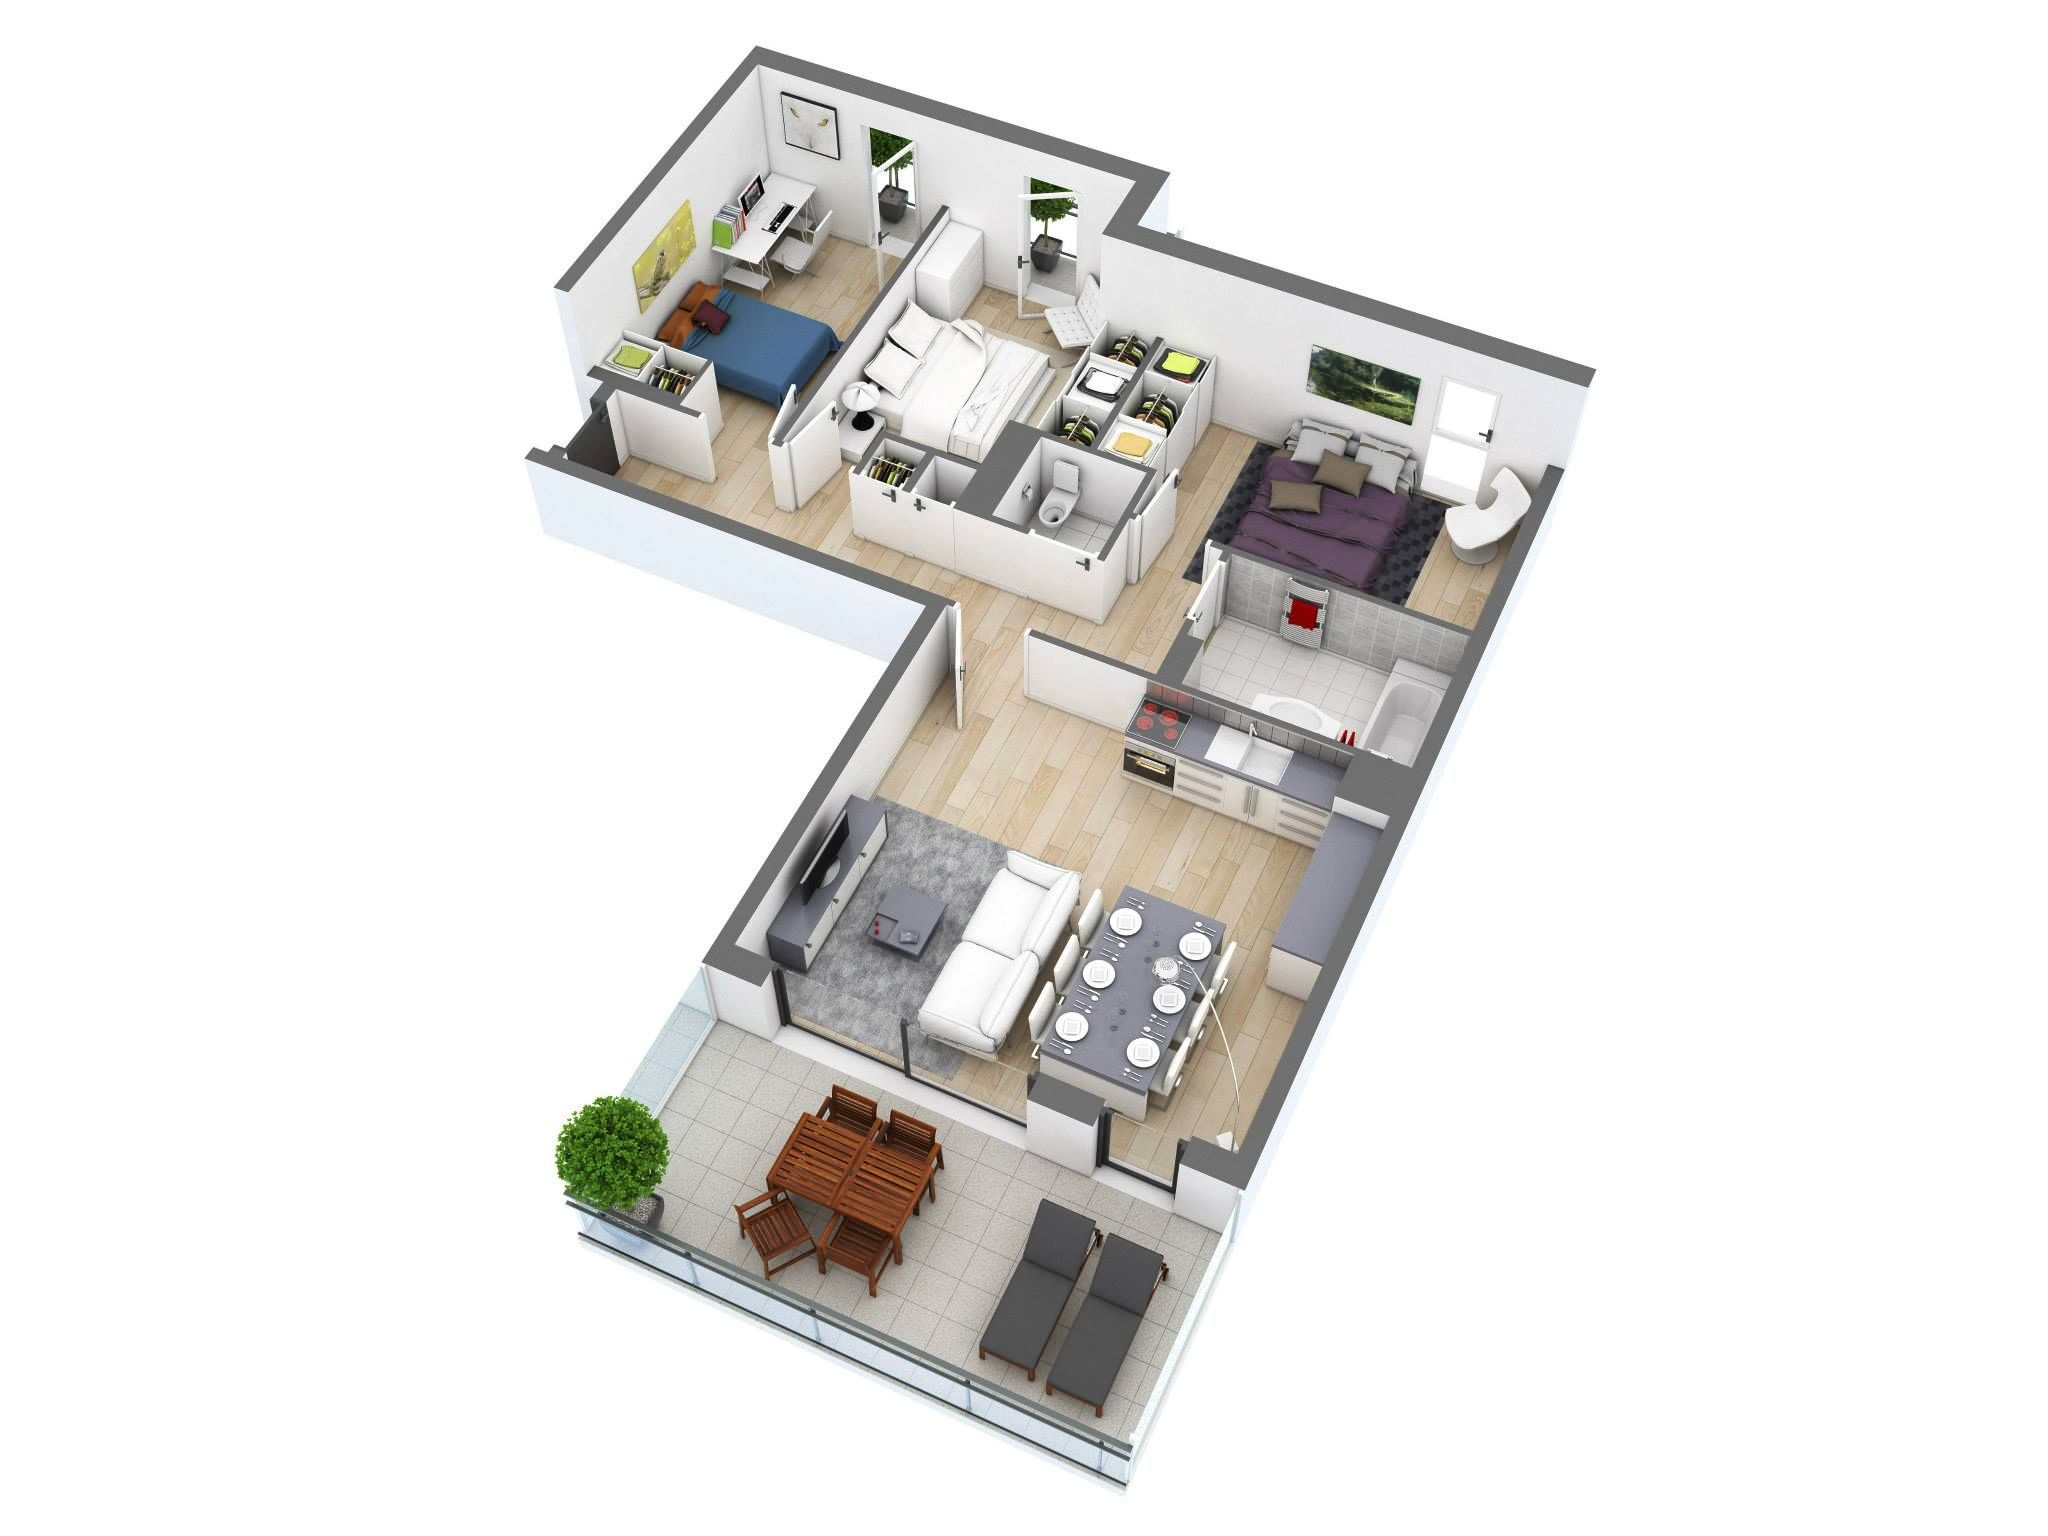 3 Bedroom Floor Plans. Idea